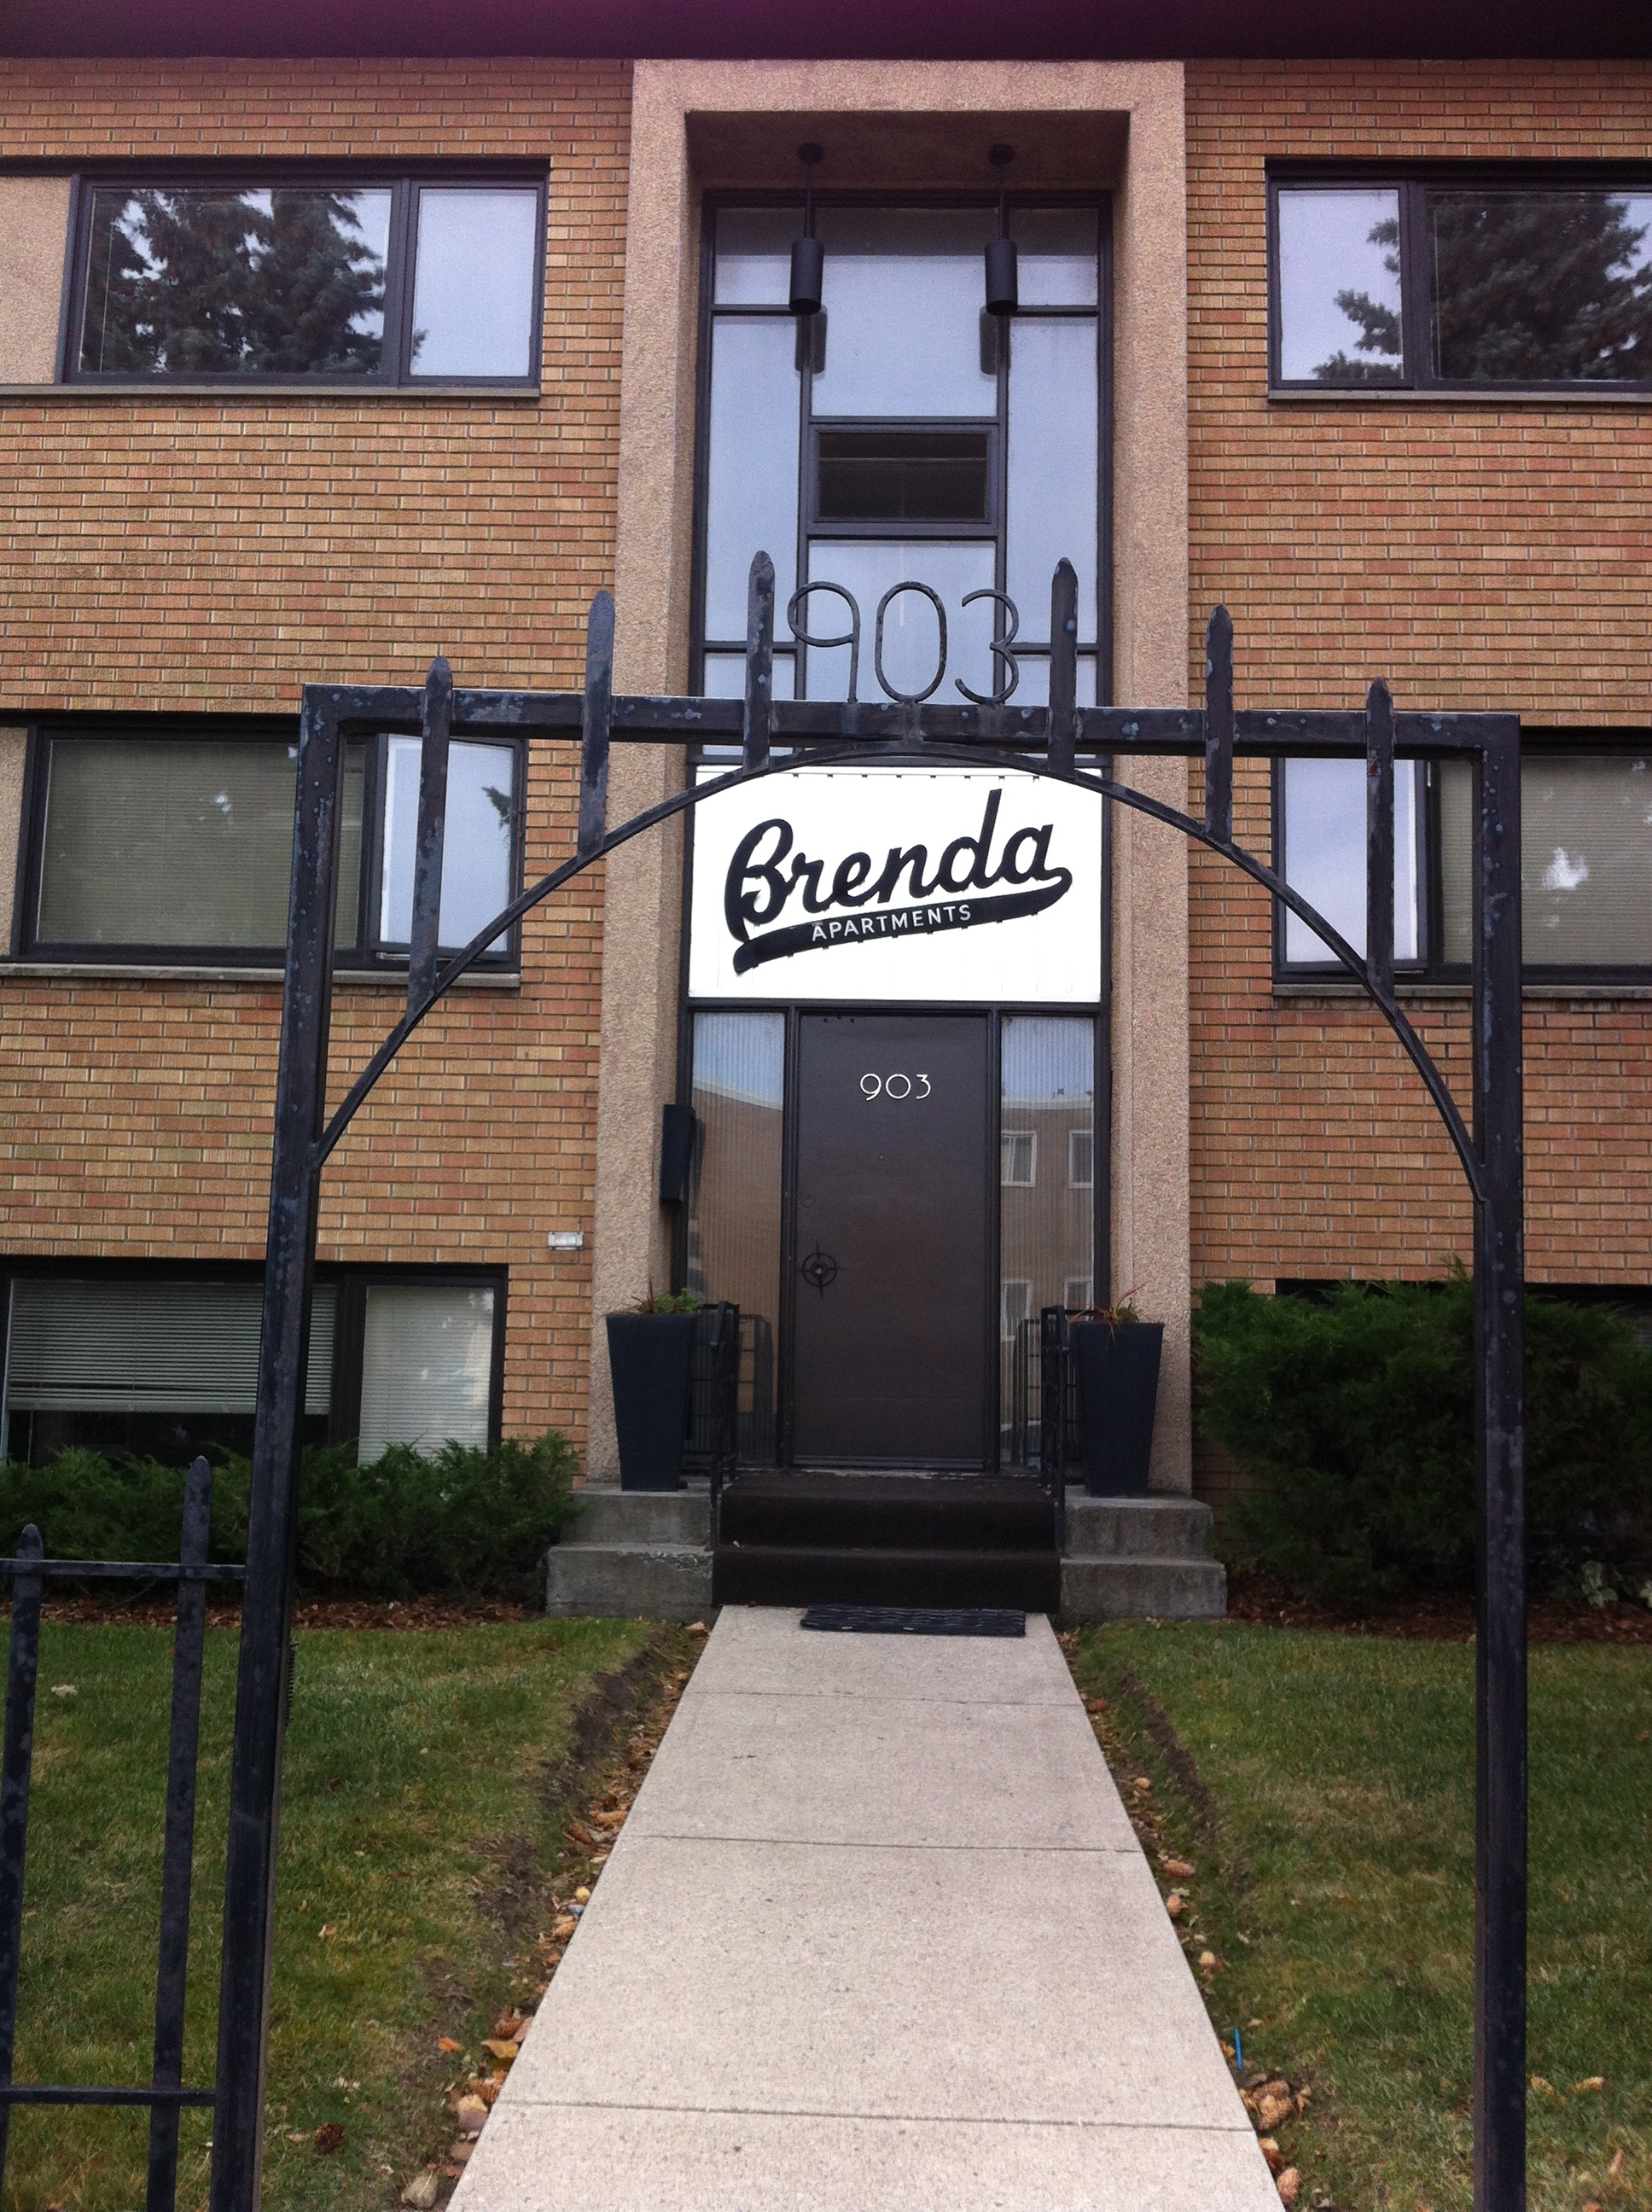 Britannia has numerous small apartment blocks surrounding the plaza to add some density close to the stores and transit. In the '60s this is where seniors would retire to.